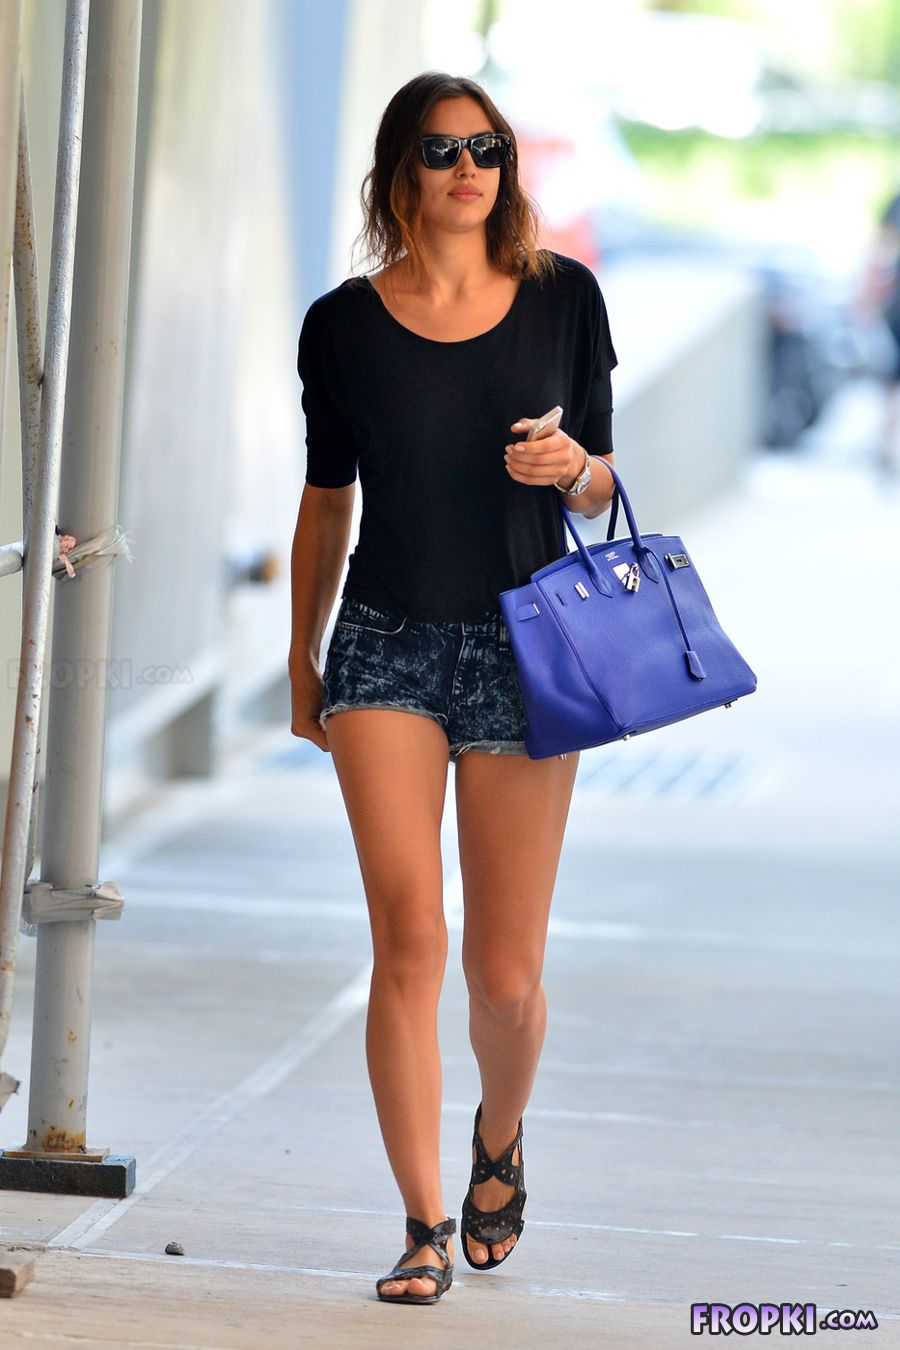 Irina Shayk out for a walk in New York